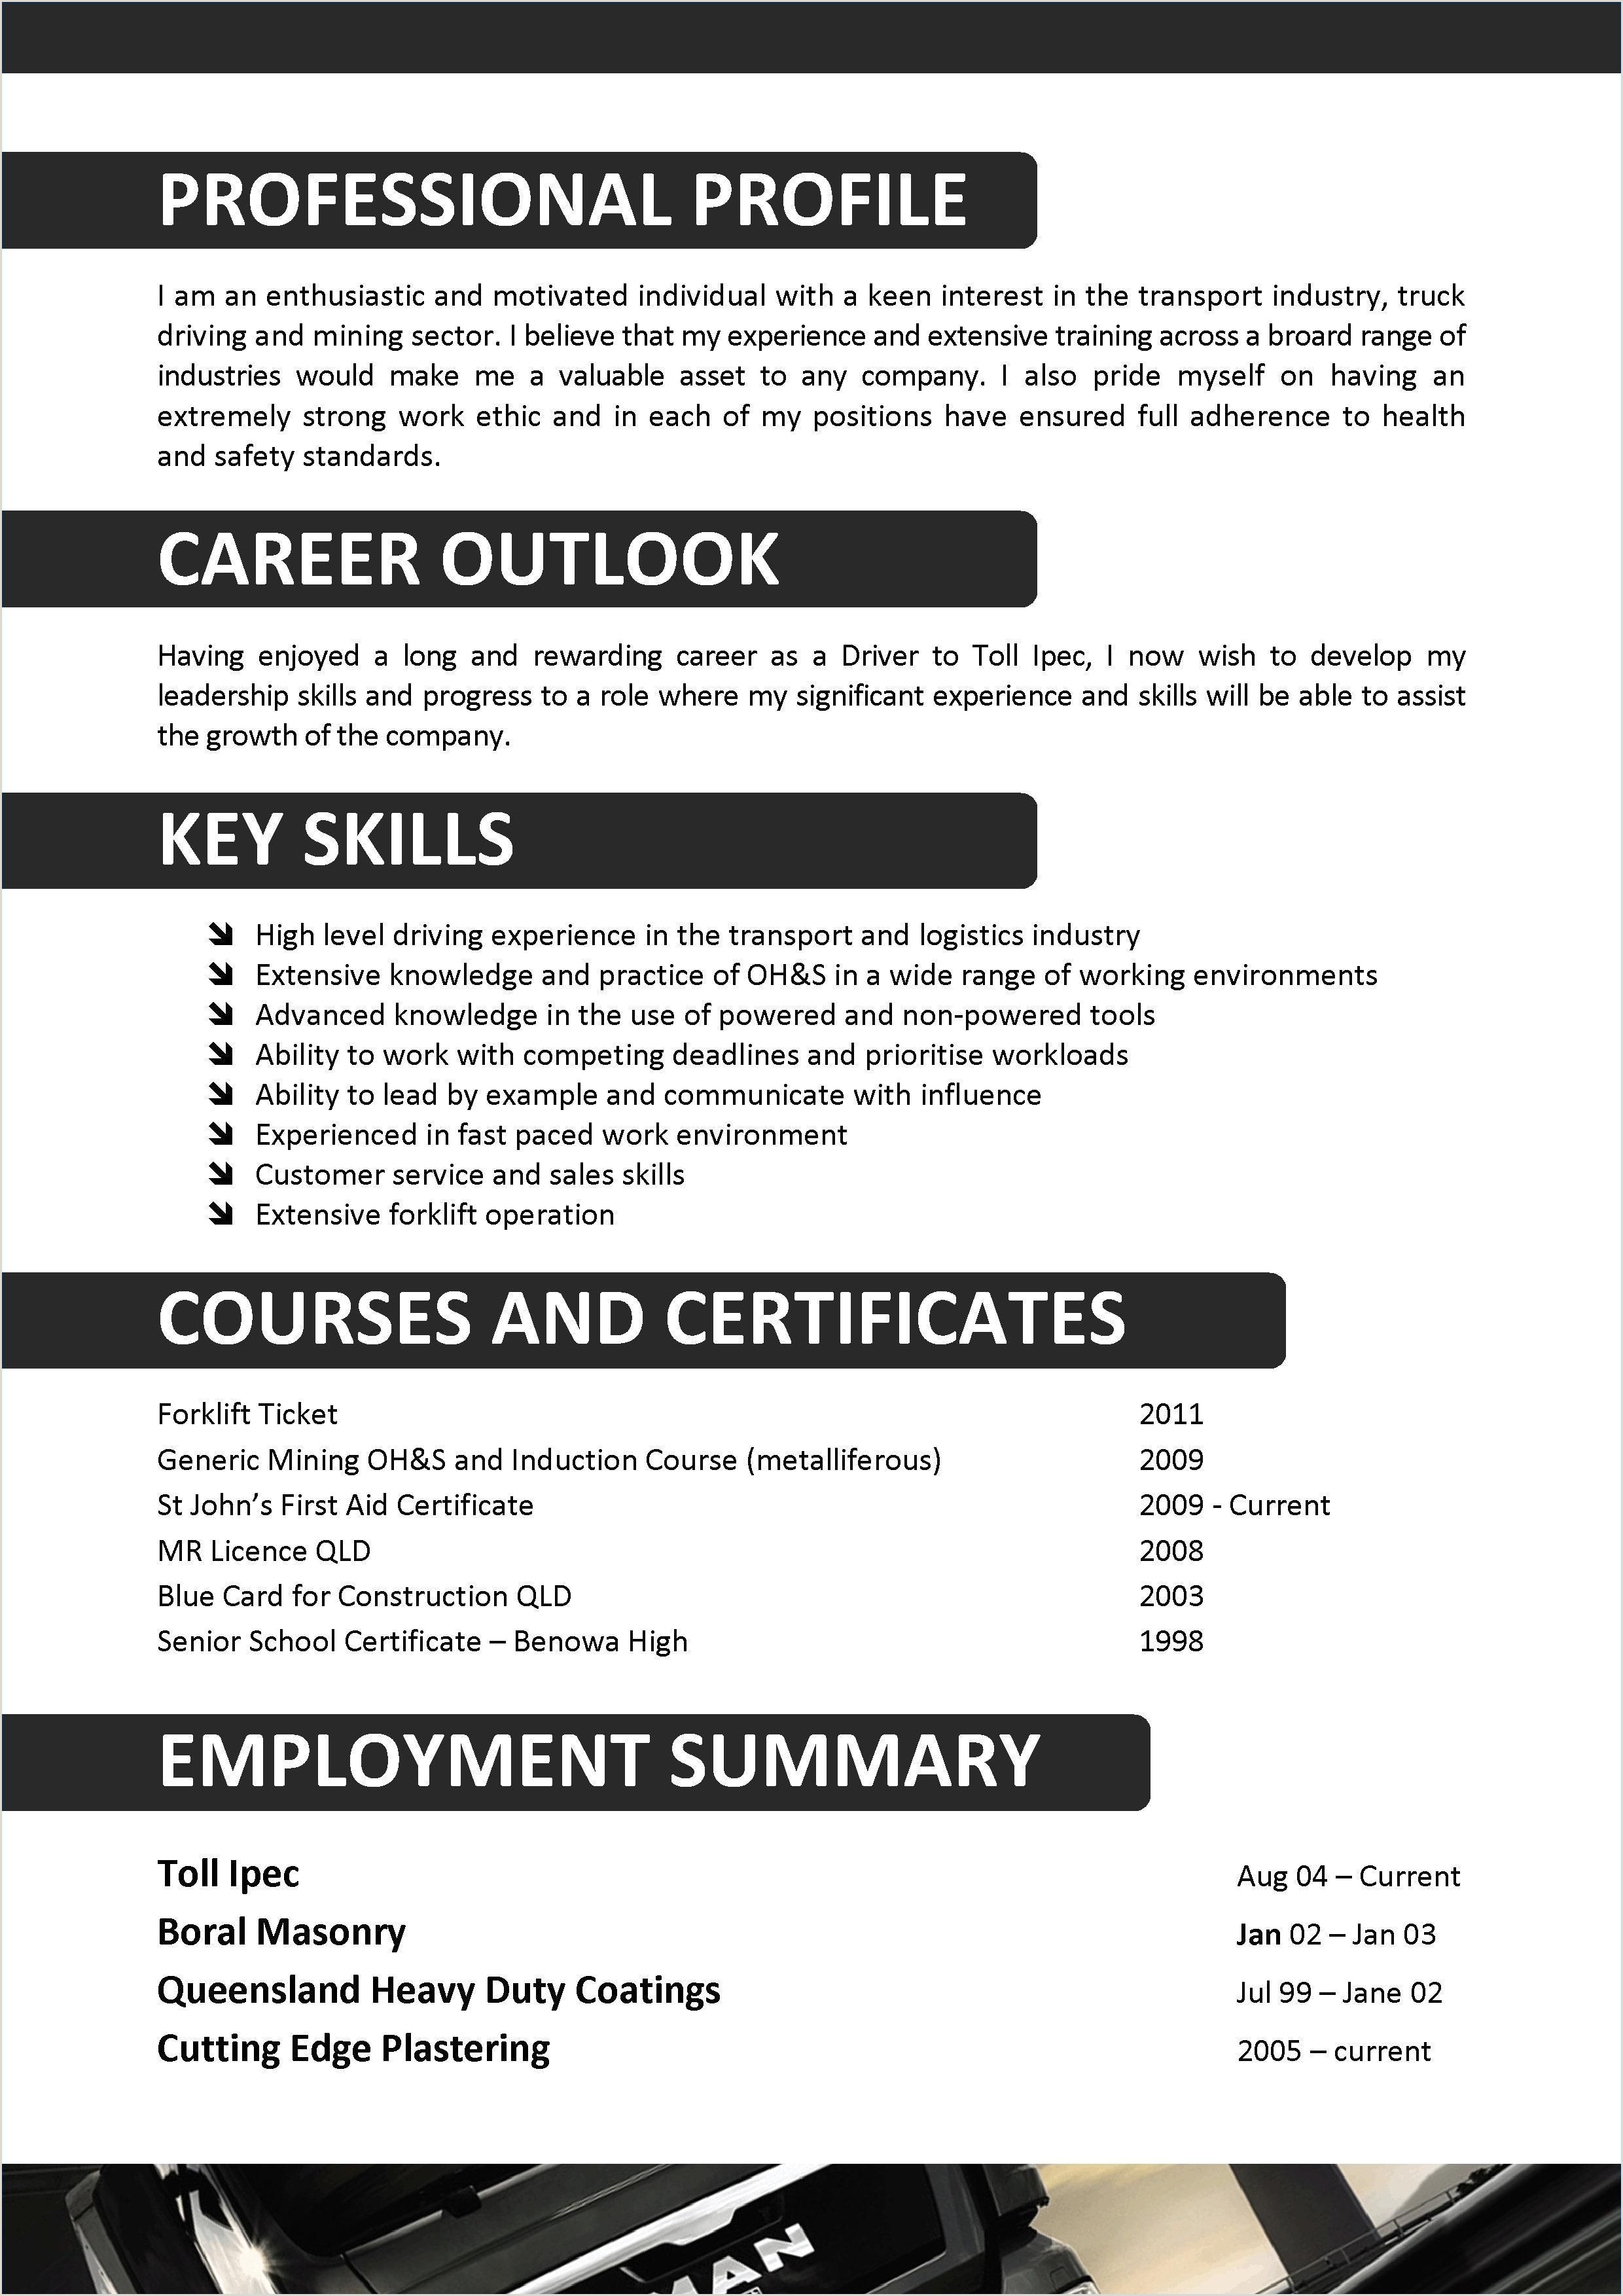 Fresher Resume Format For Logistics 11 Construction Resume Examples And Samples